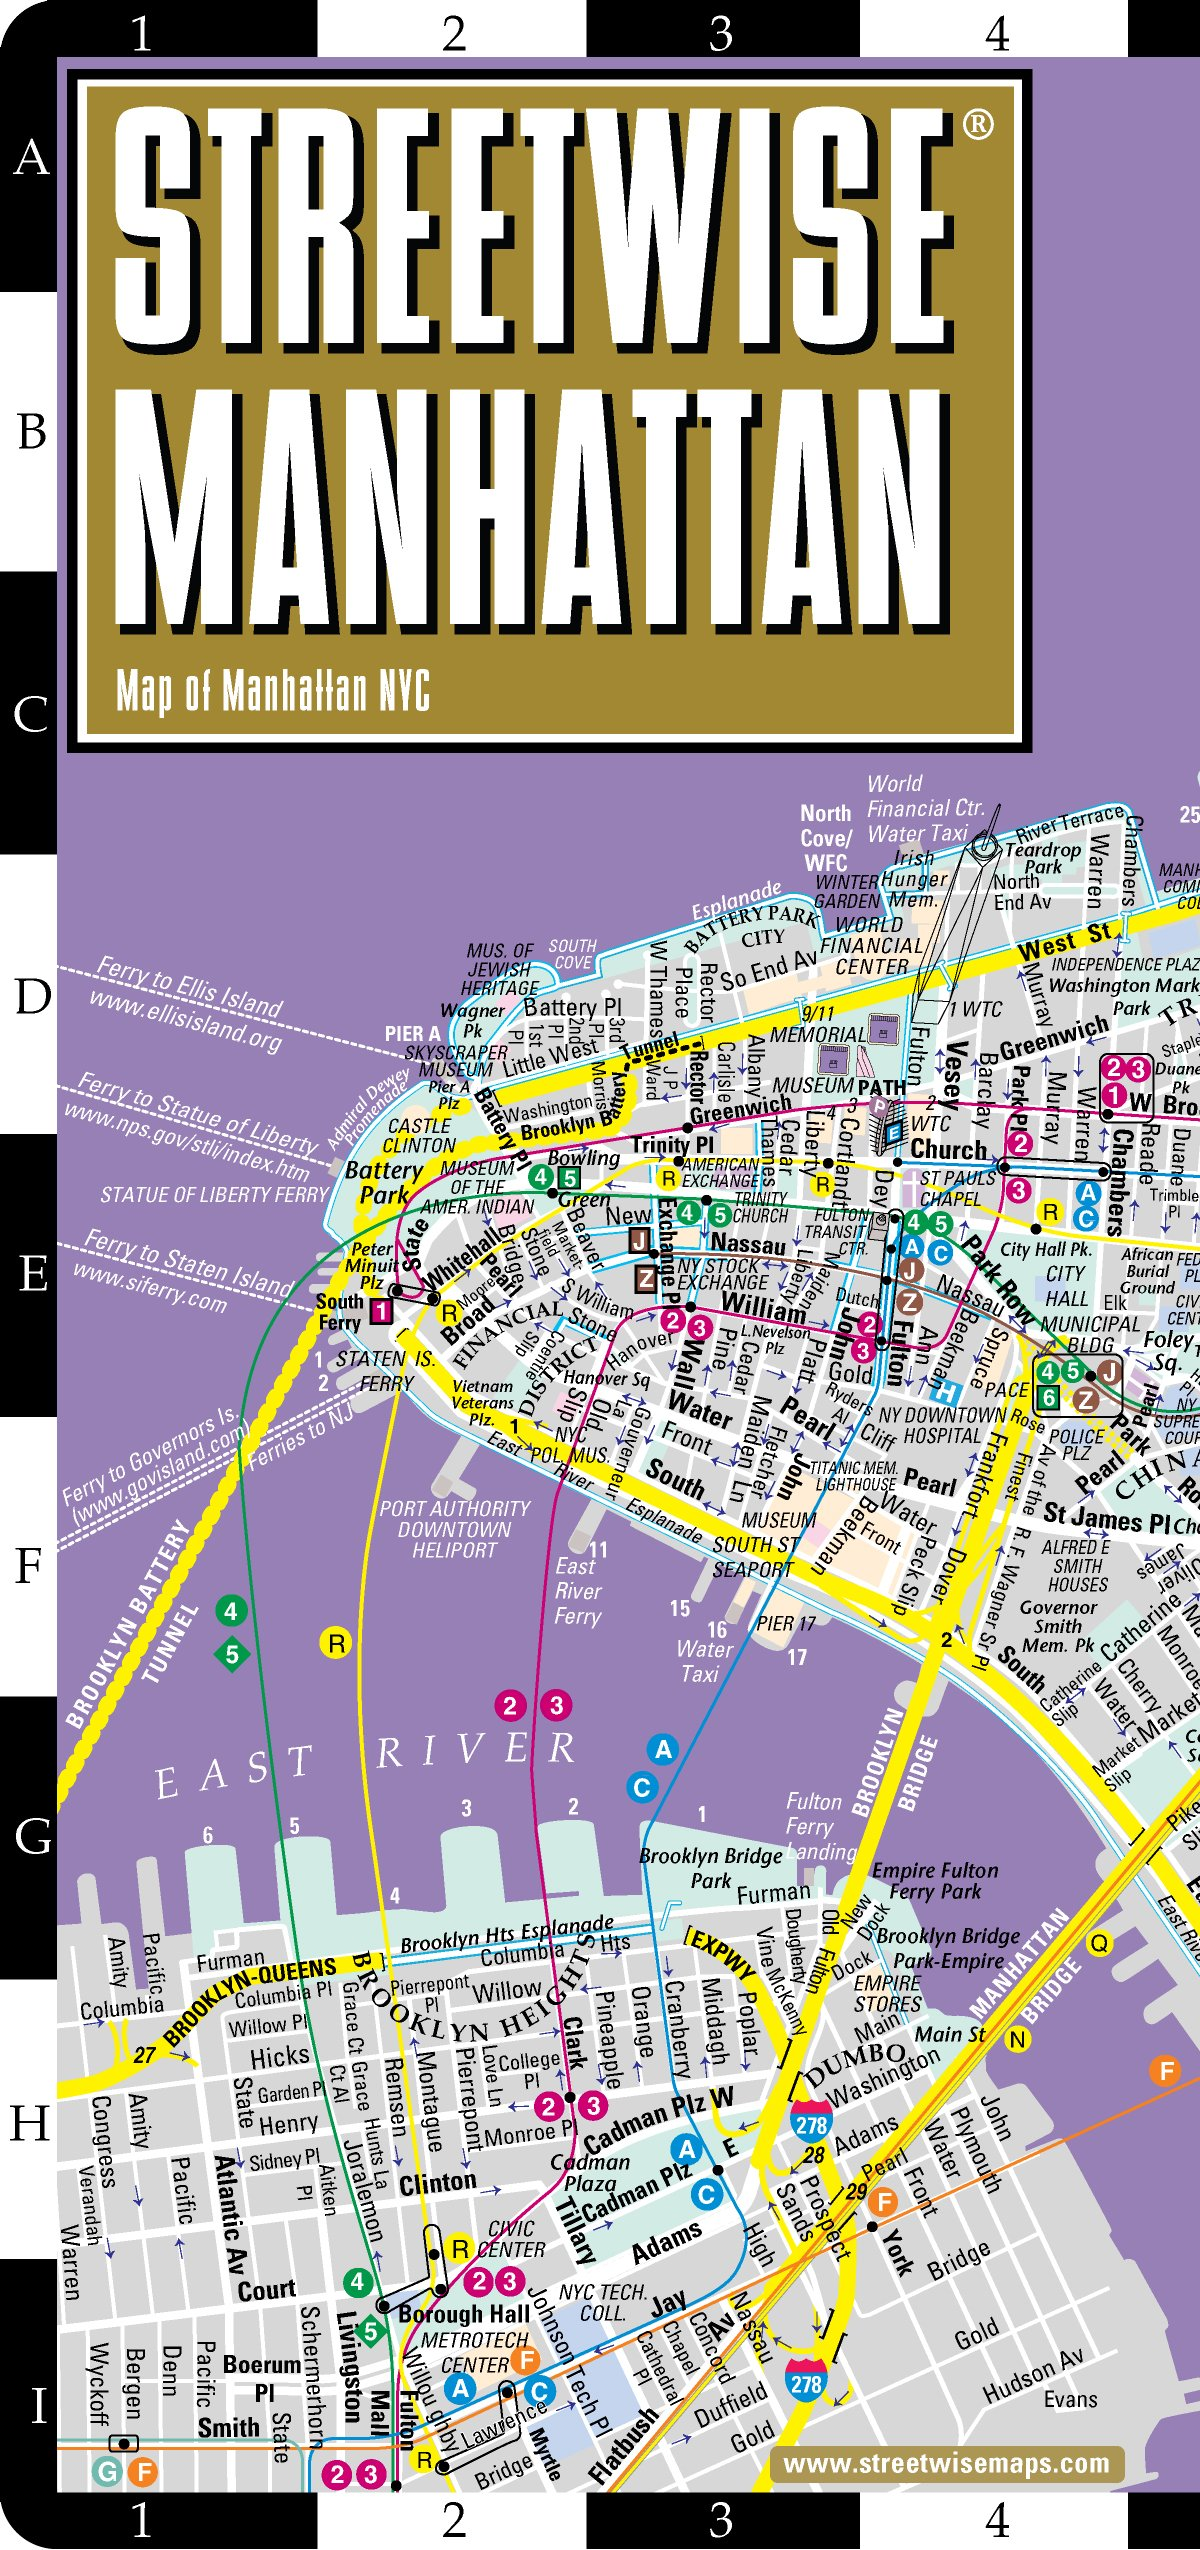 Streetwise Manhattan Map - Laminated City Street Map of Manhattan ...